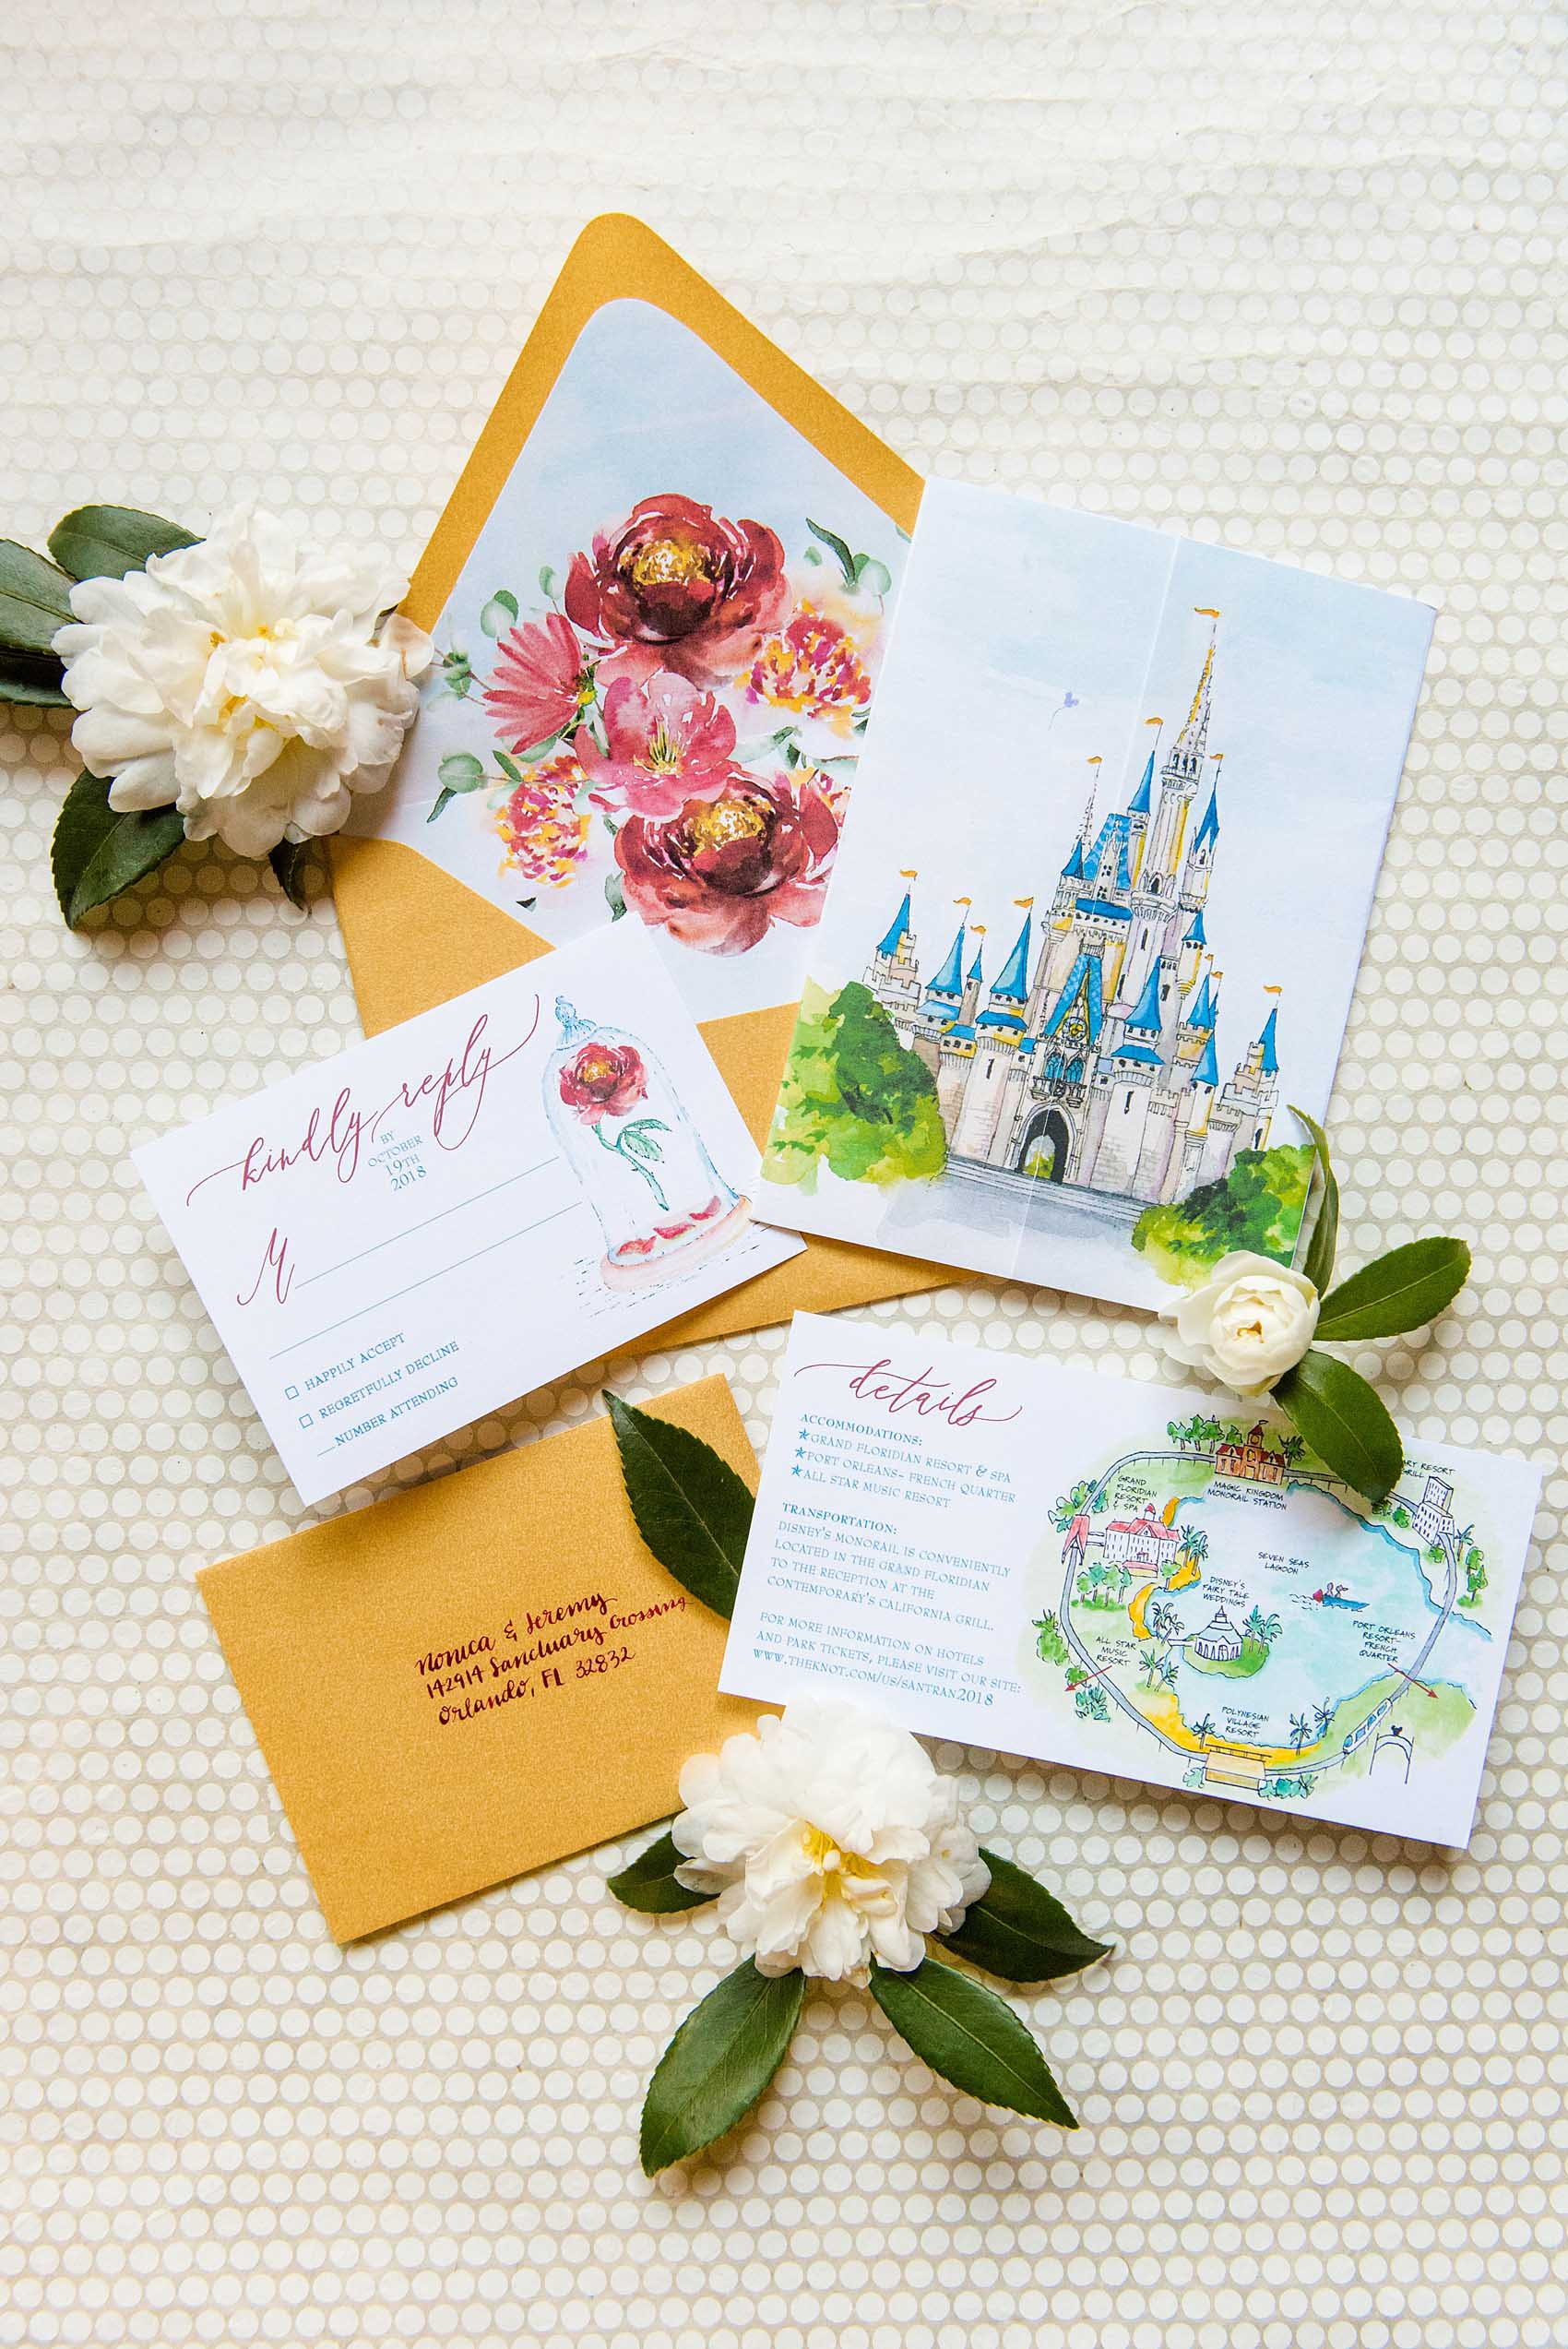 Photographs of a Walt Disney World wedding by Mikkel Paige Photography will give you ideas for a tasteful Beauty and the Beast theme. The awesome invitation had a custom watercolor by Watercolor Design Studio of the couple's dog, Cinderella's castle, and the Seven Seas Lagoon. The bride and groom managed beautiful details for their dream ceremony and reception even on a small budget. #disneywedding #disneybride #waltdisneyworld #DisneyWorldWedding #watercolorinvitation #disneyillustration